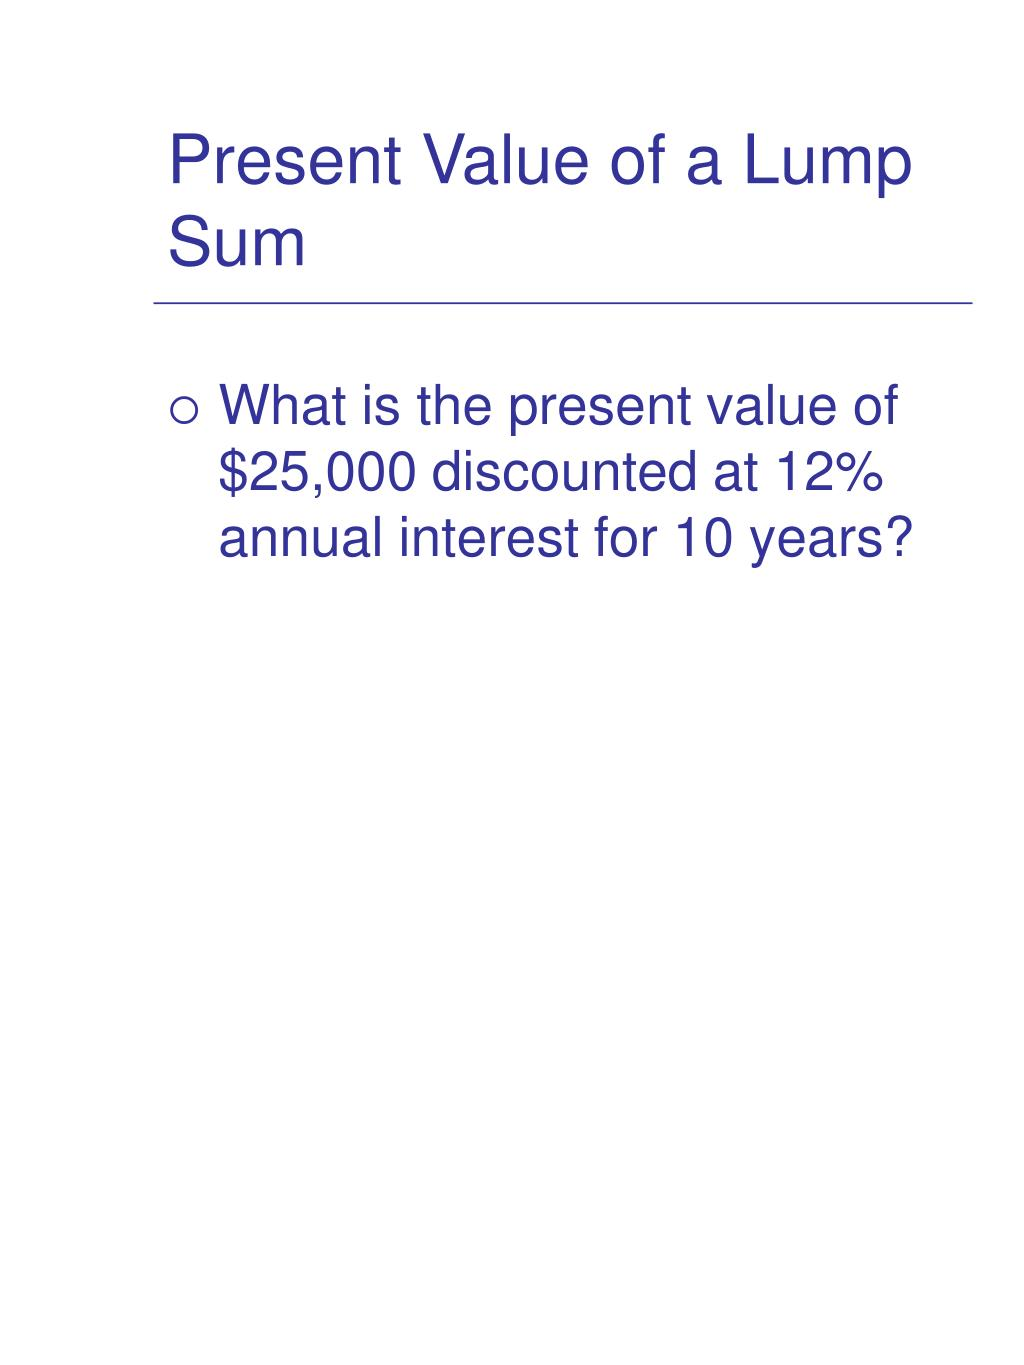 present benefit associated with a fabulous large sum